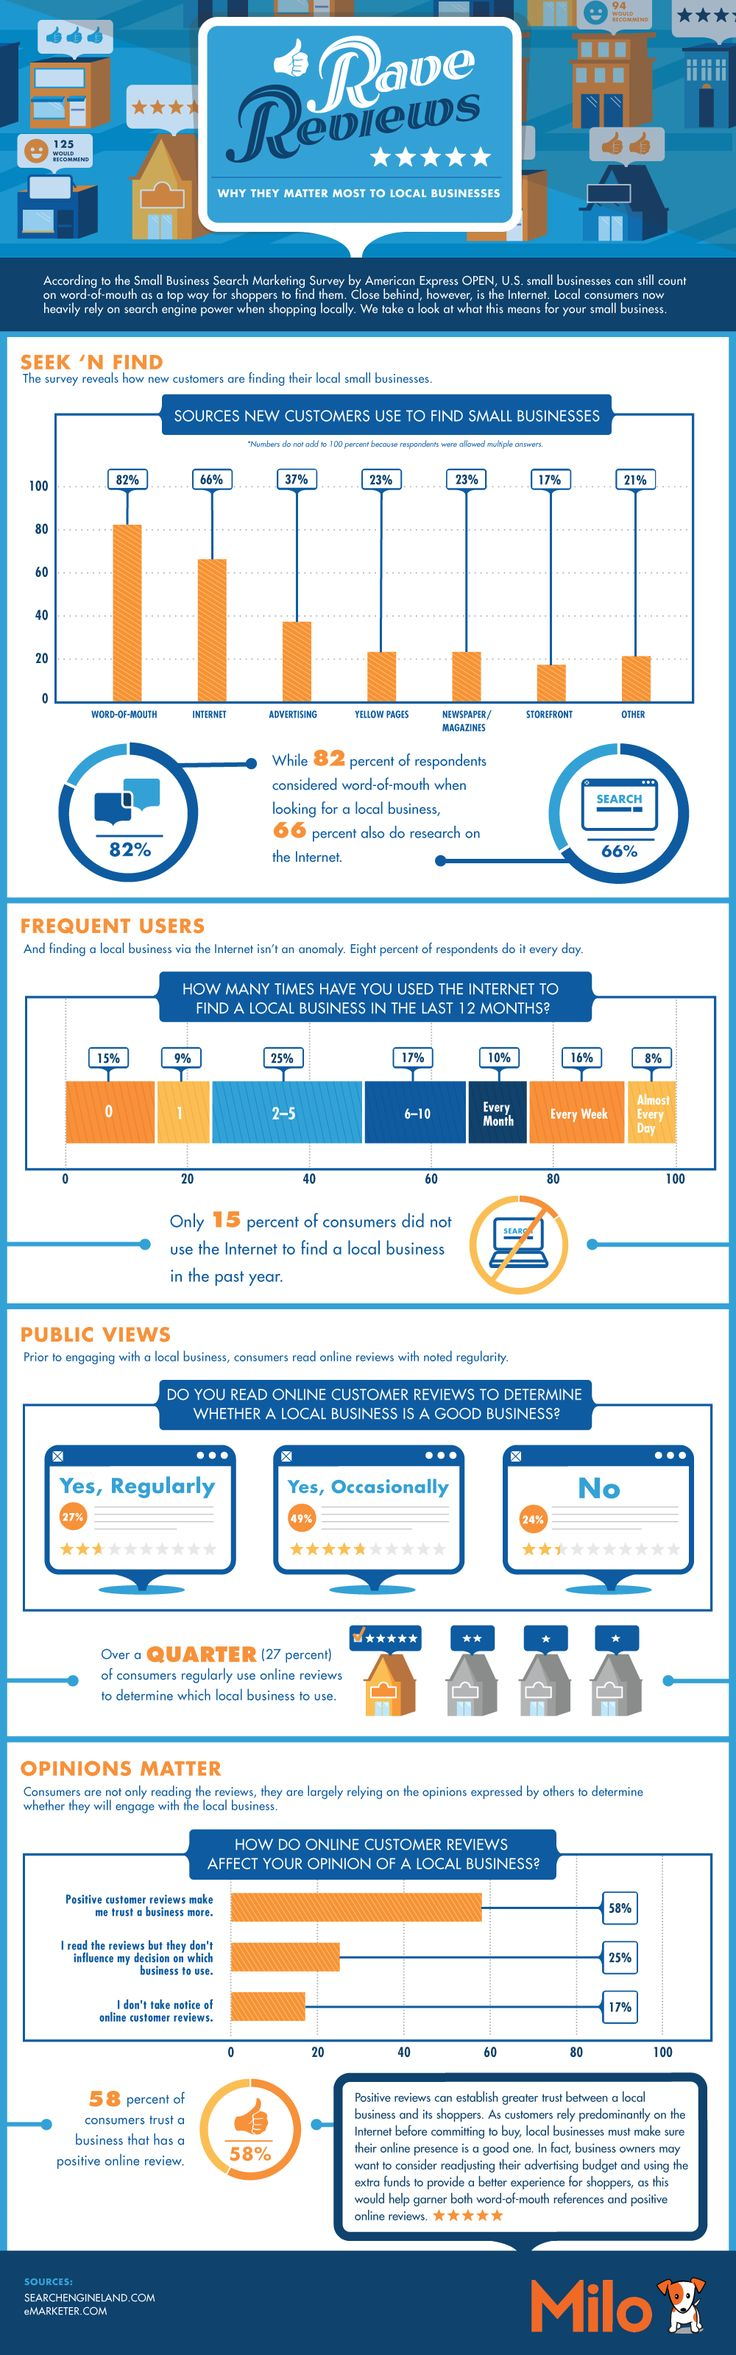 #infographic- the importance of online reviews